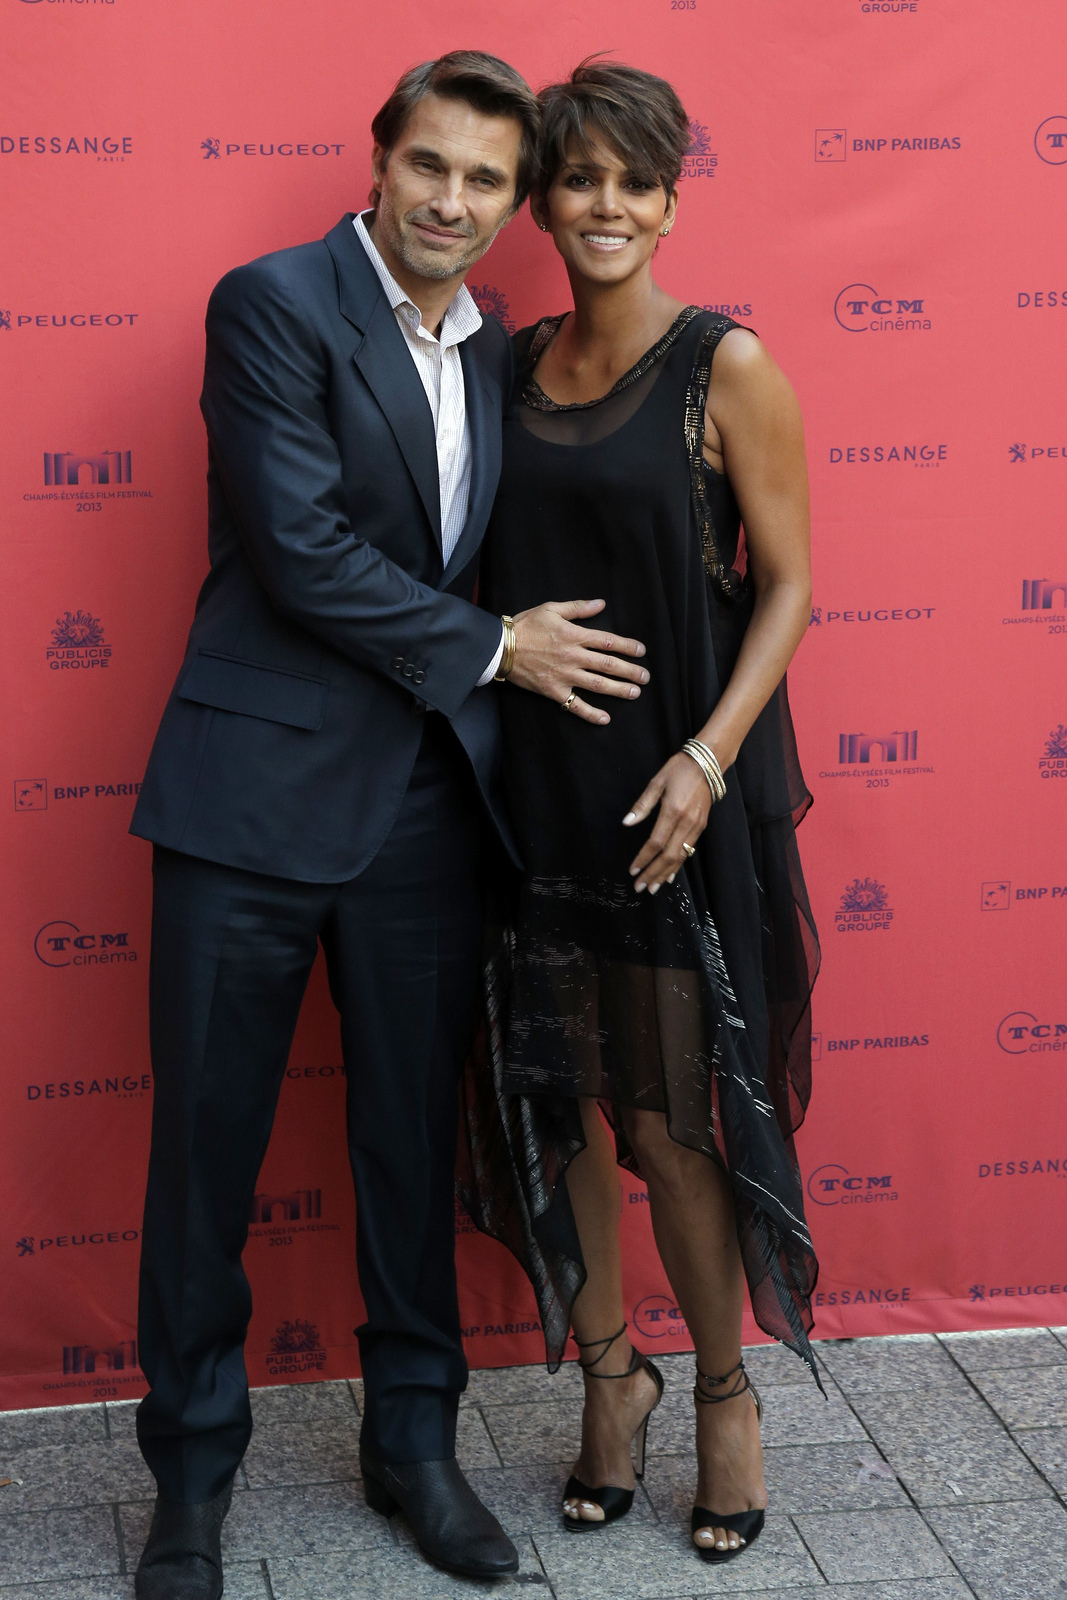 Halle-Berry-Paris-Cinema-2013-The-Jasmine-Brand